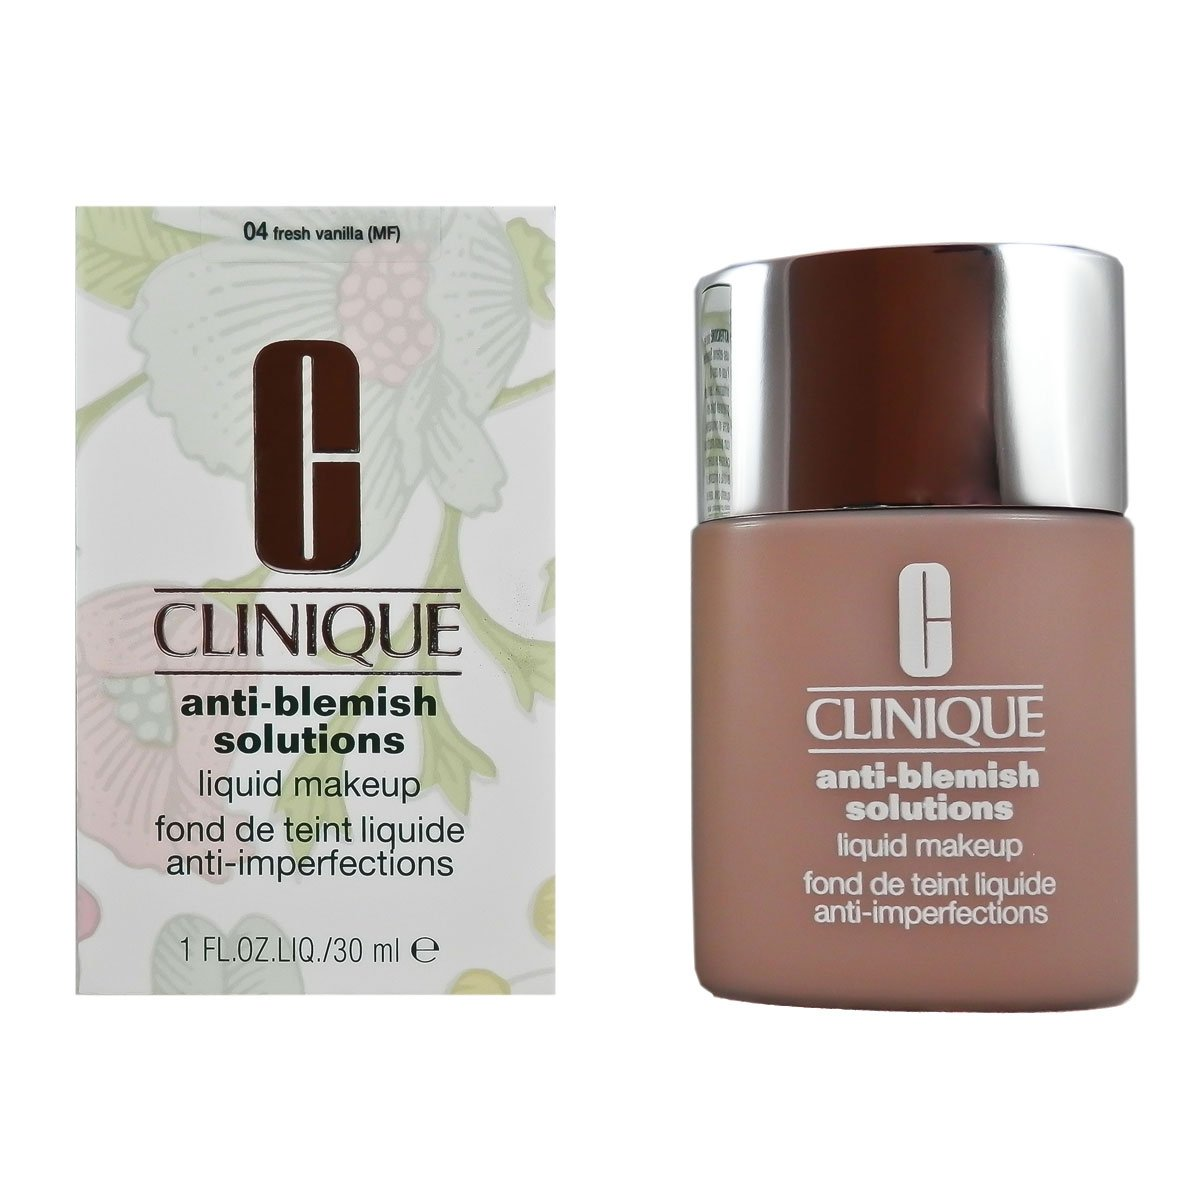 Clinique Anti Blemish Solutions Liquid Makeup foundation